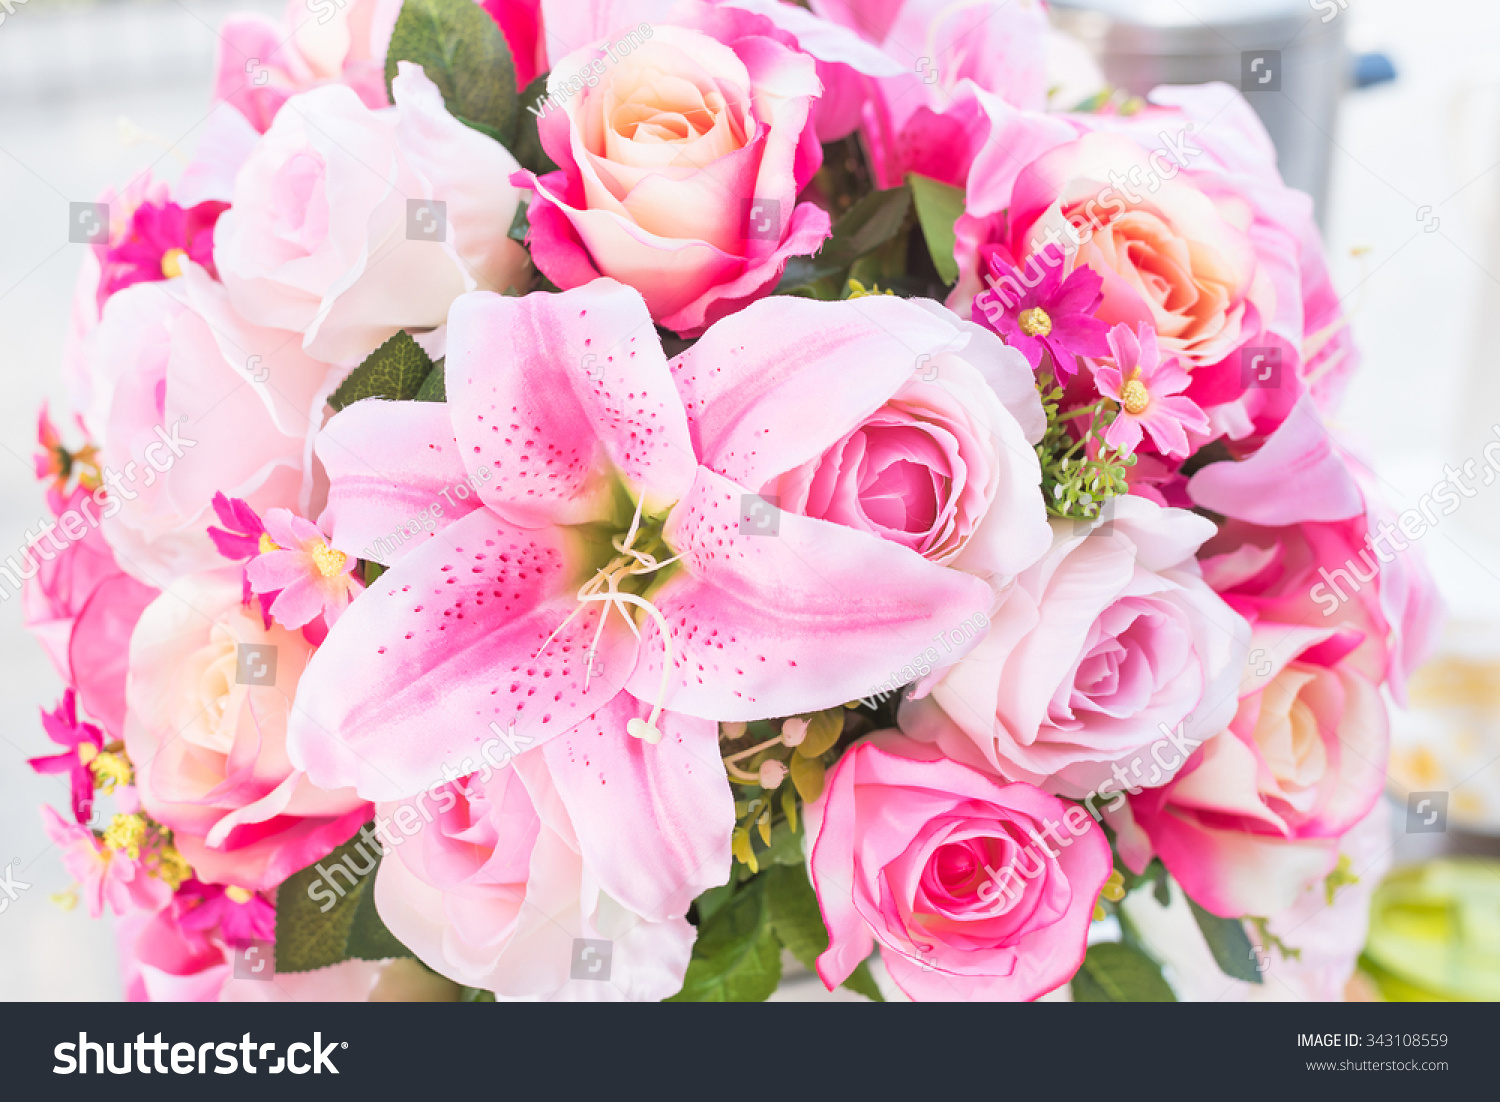 Beautiful flowers bouquet roses on wood stock photo edit now beautiful flowers bouquet of roses on wood background useful as valentine card colorful flowers and izmirmasajfo